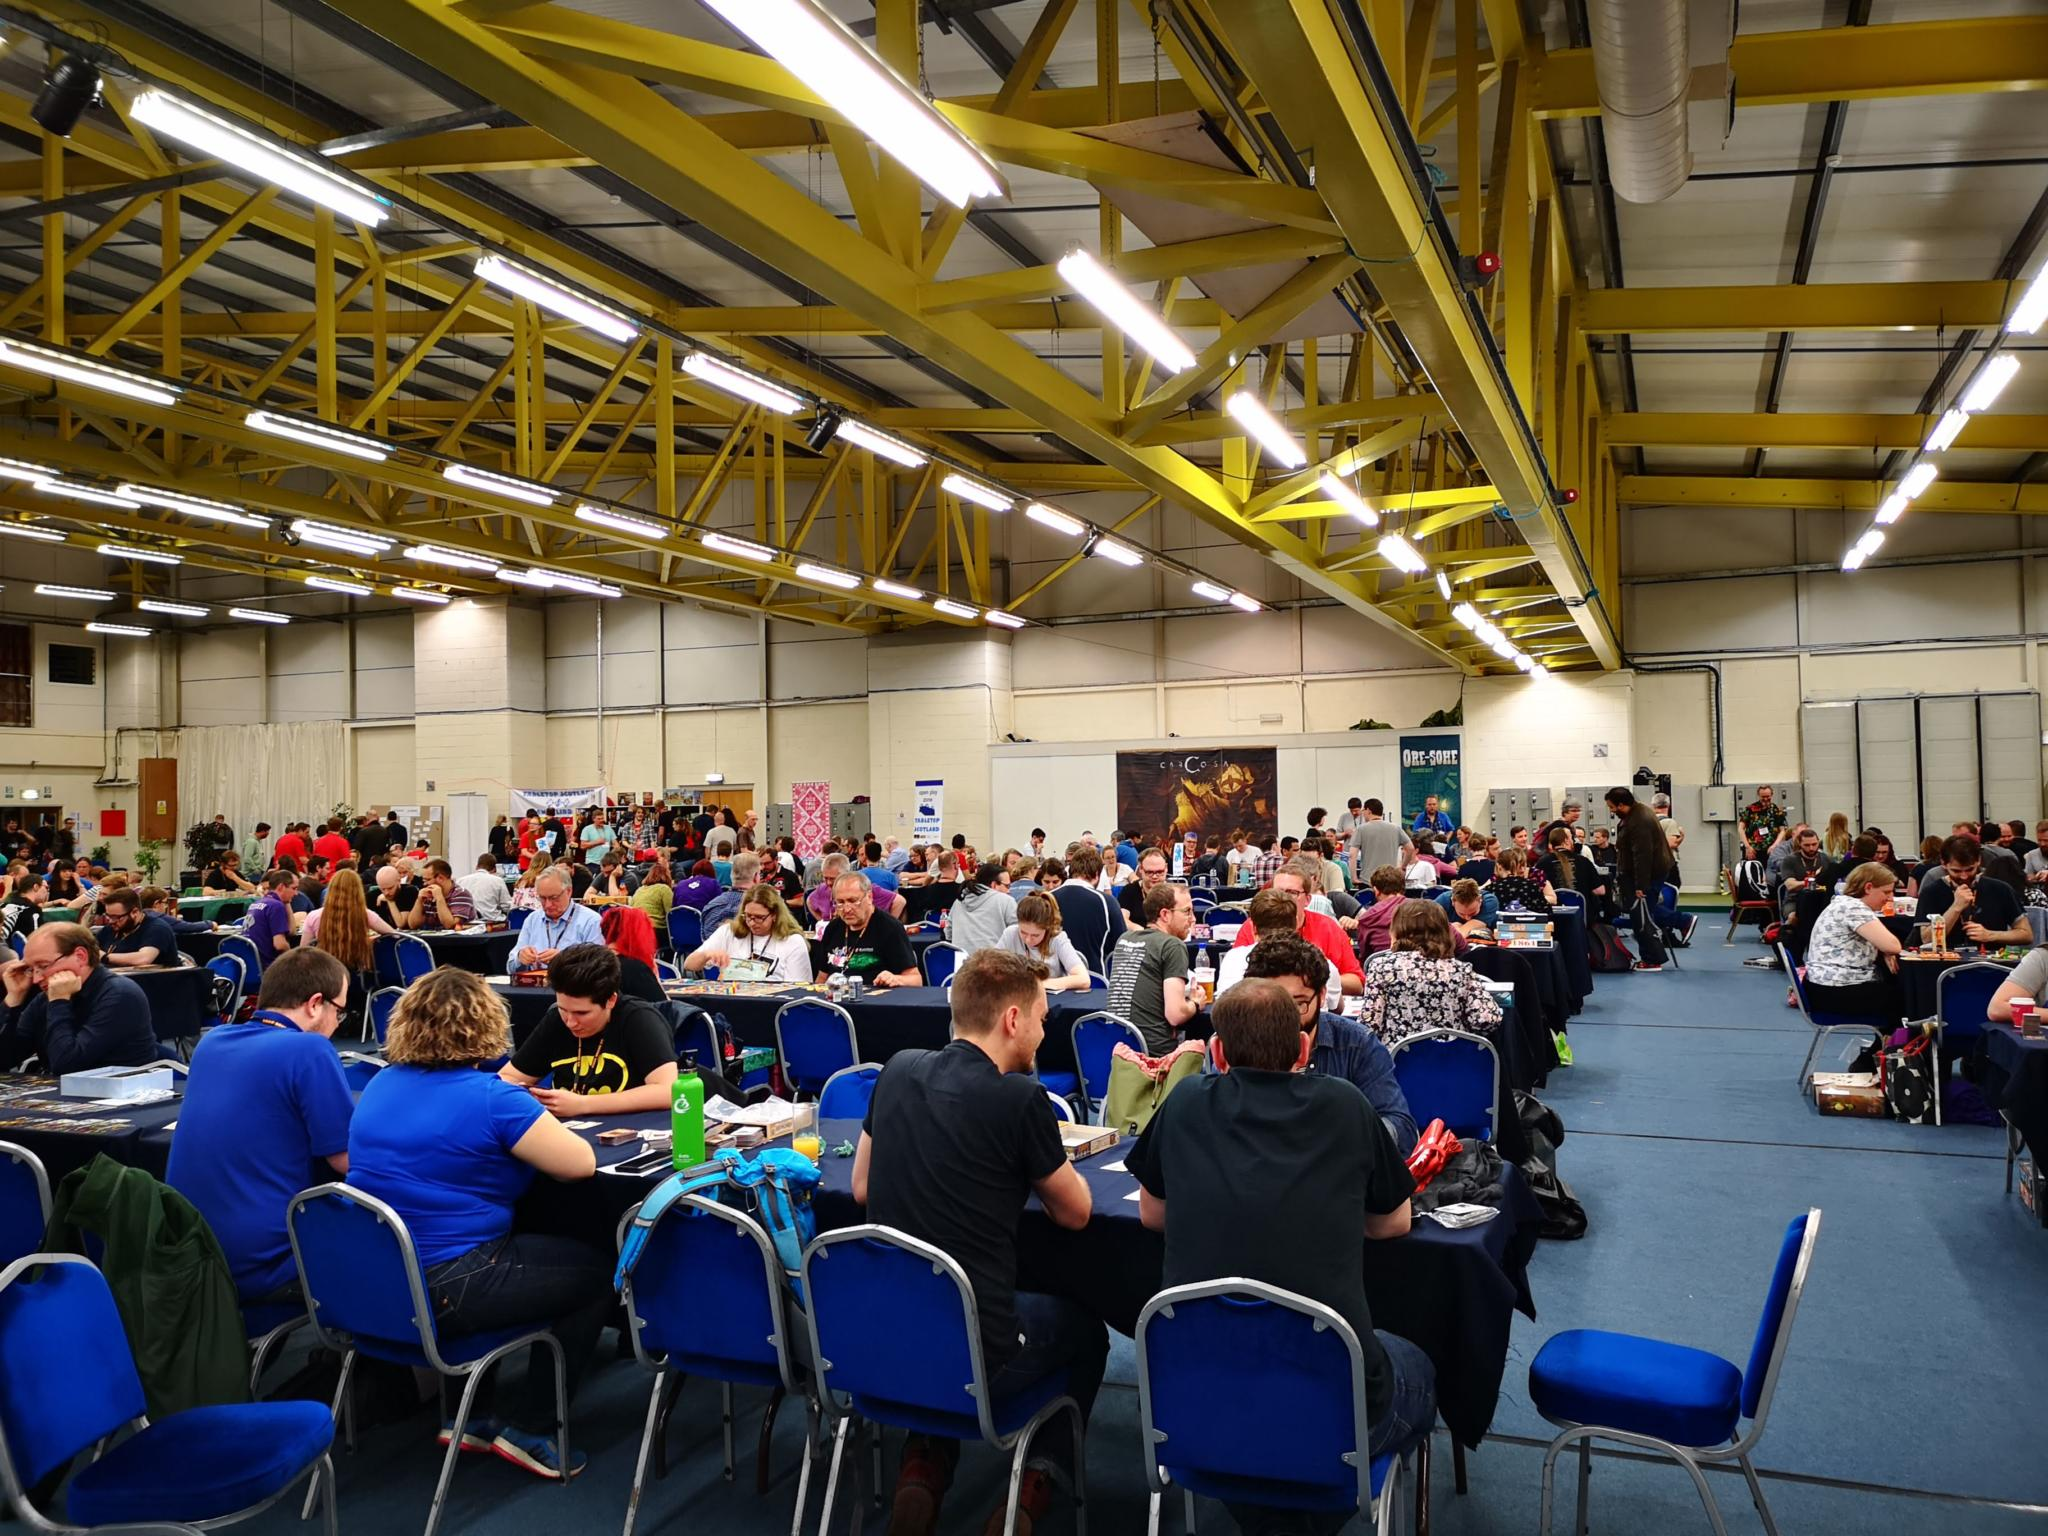 Tables filling up at Tabletop Scotland